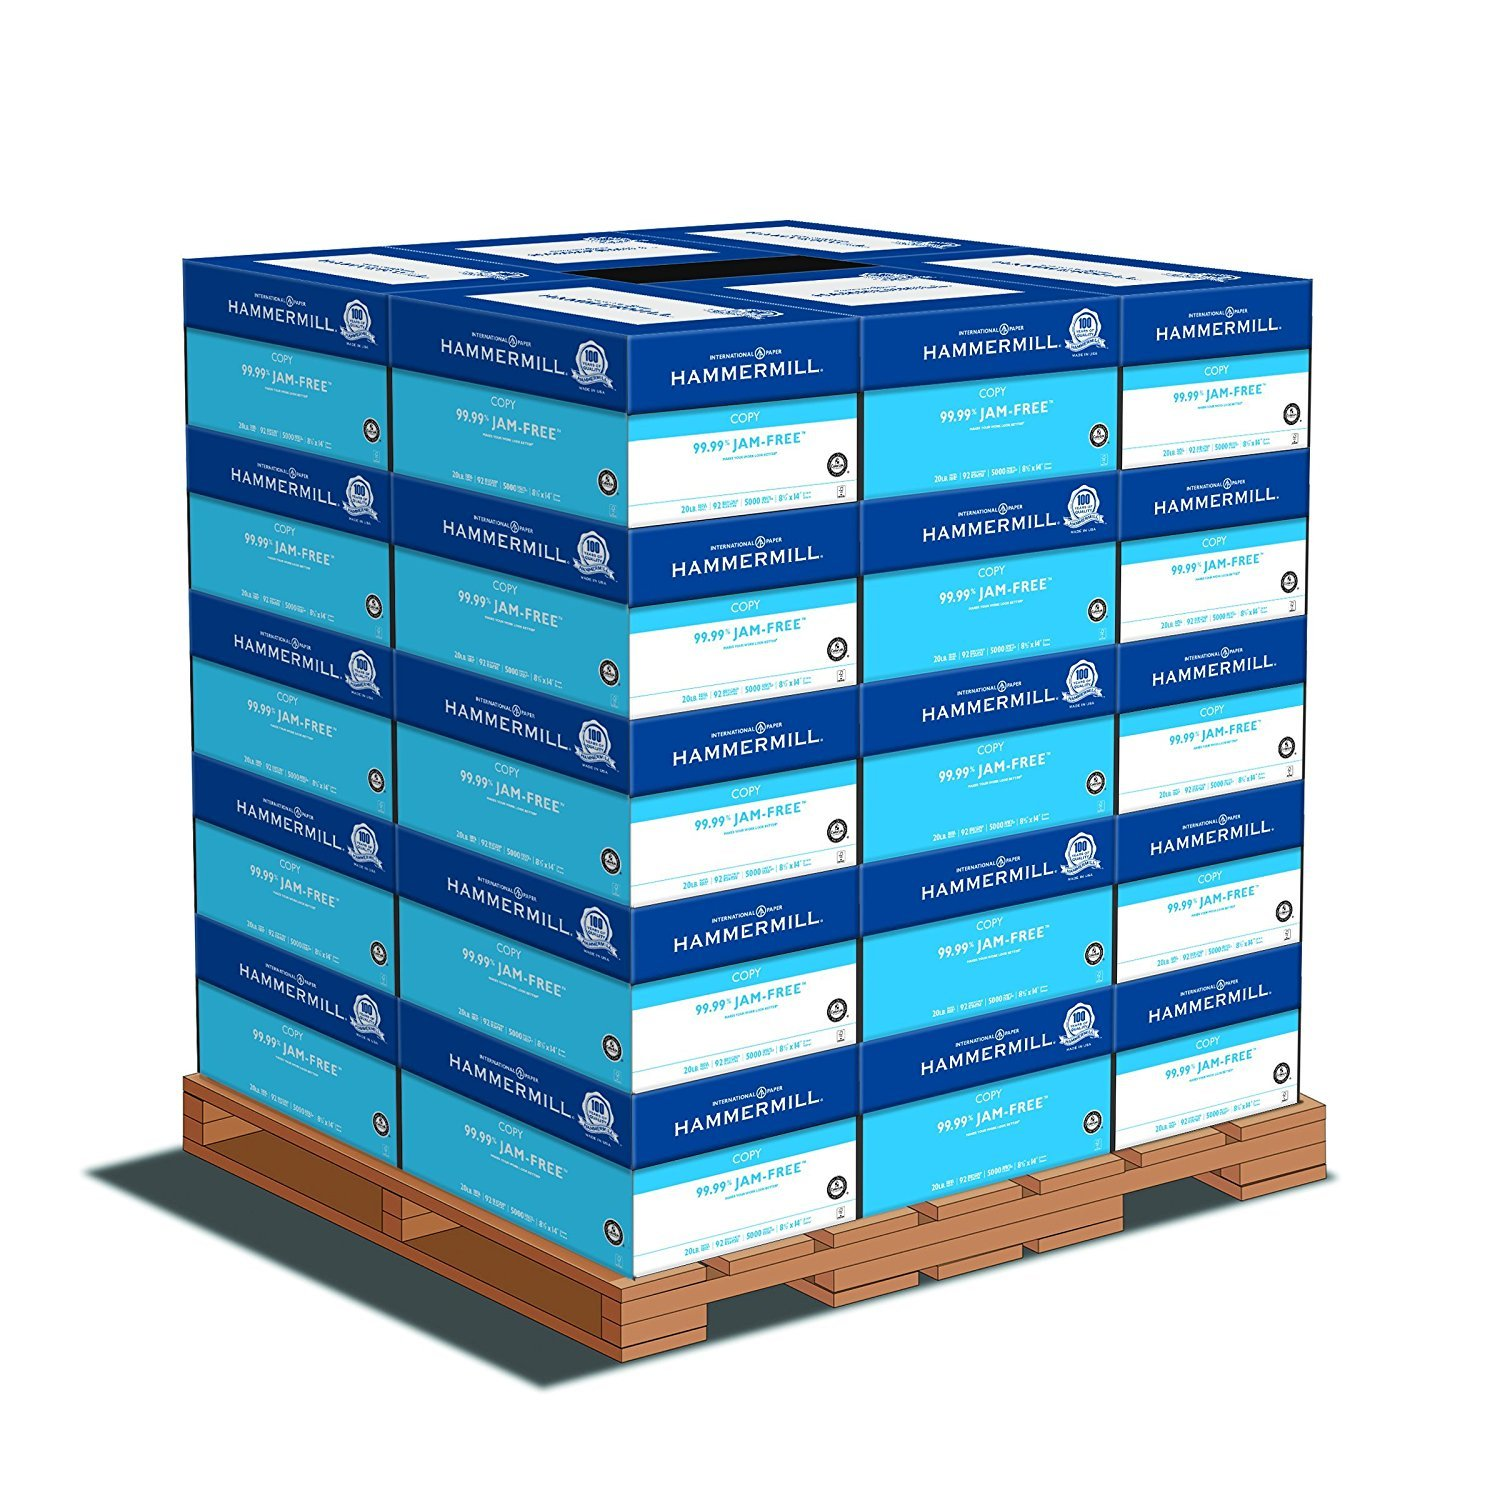 Hammermill Paper, Tidal Multipurpose, 8.5 x 14, Legal, 20lb, 92 Bright, 5000 Sheets per Carton - 30 Cartons per Pallet, 150,000 Sheets (162016PLT) Pallet Pricing, Made In The USA